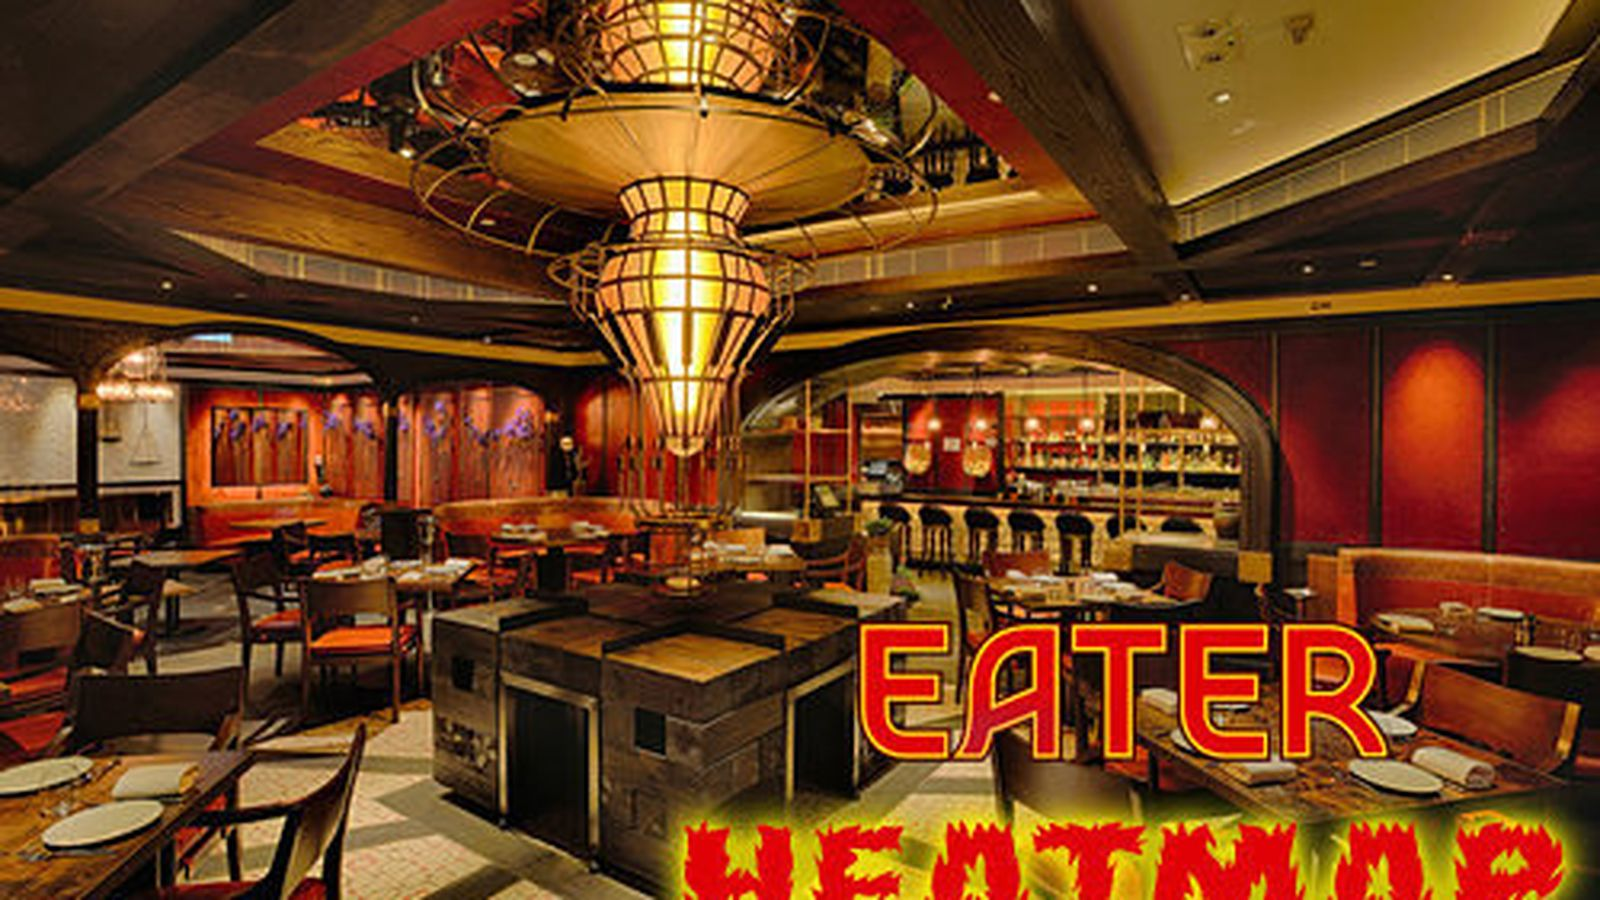 Hong Kong Eater - Washington dc eater heat map